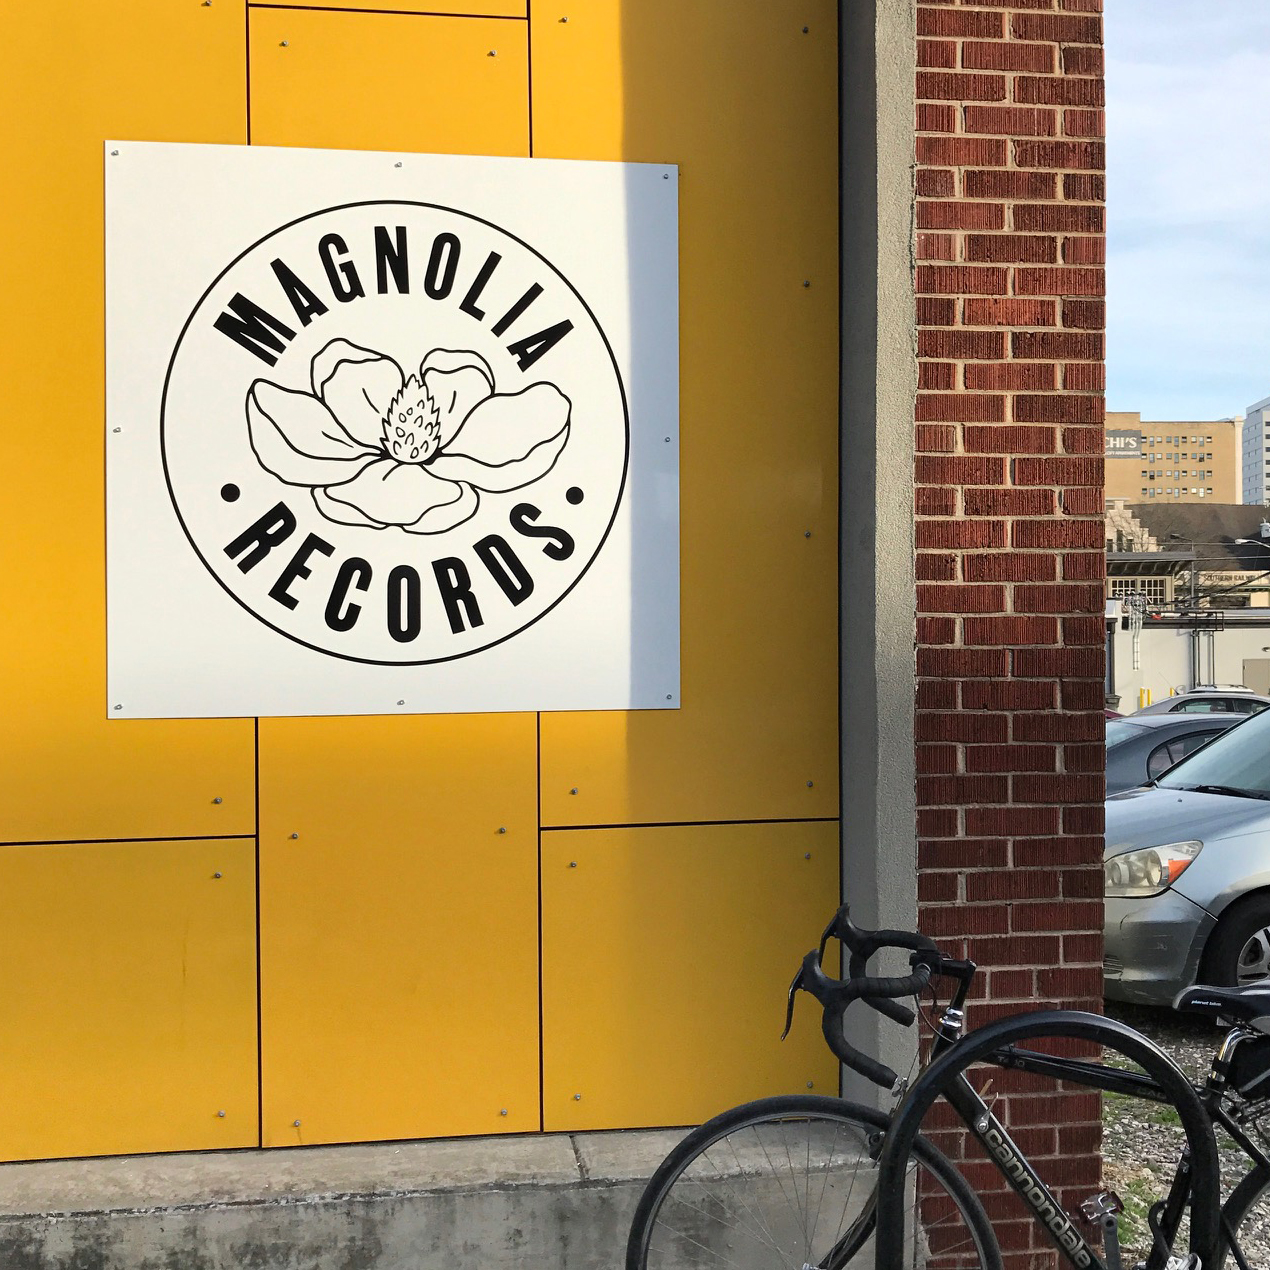 Logo designed by S. Shebaro for Magnolia Records - Knoxville TN